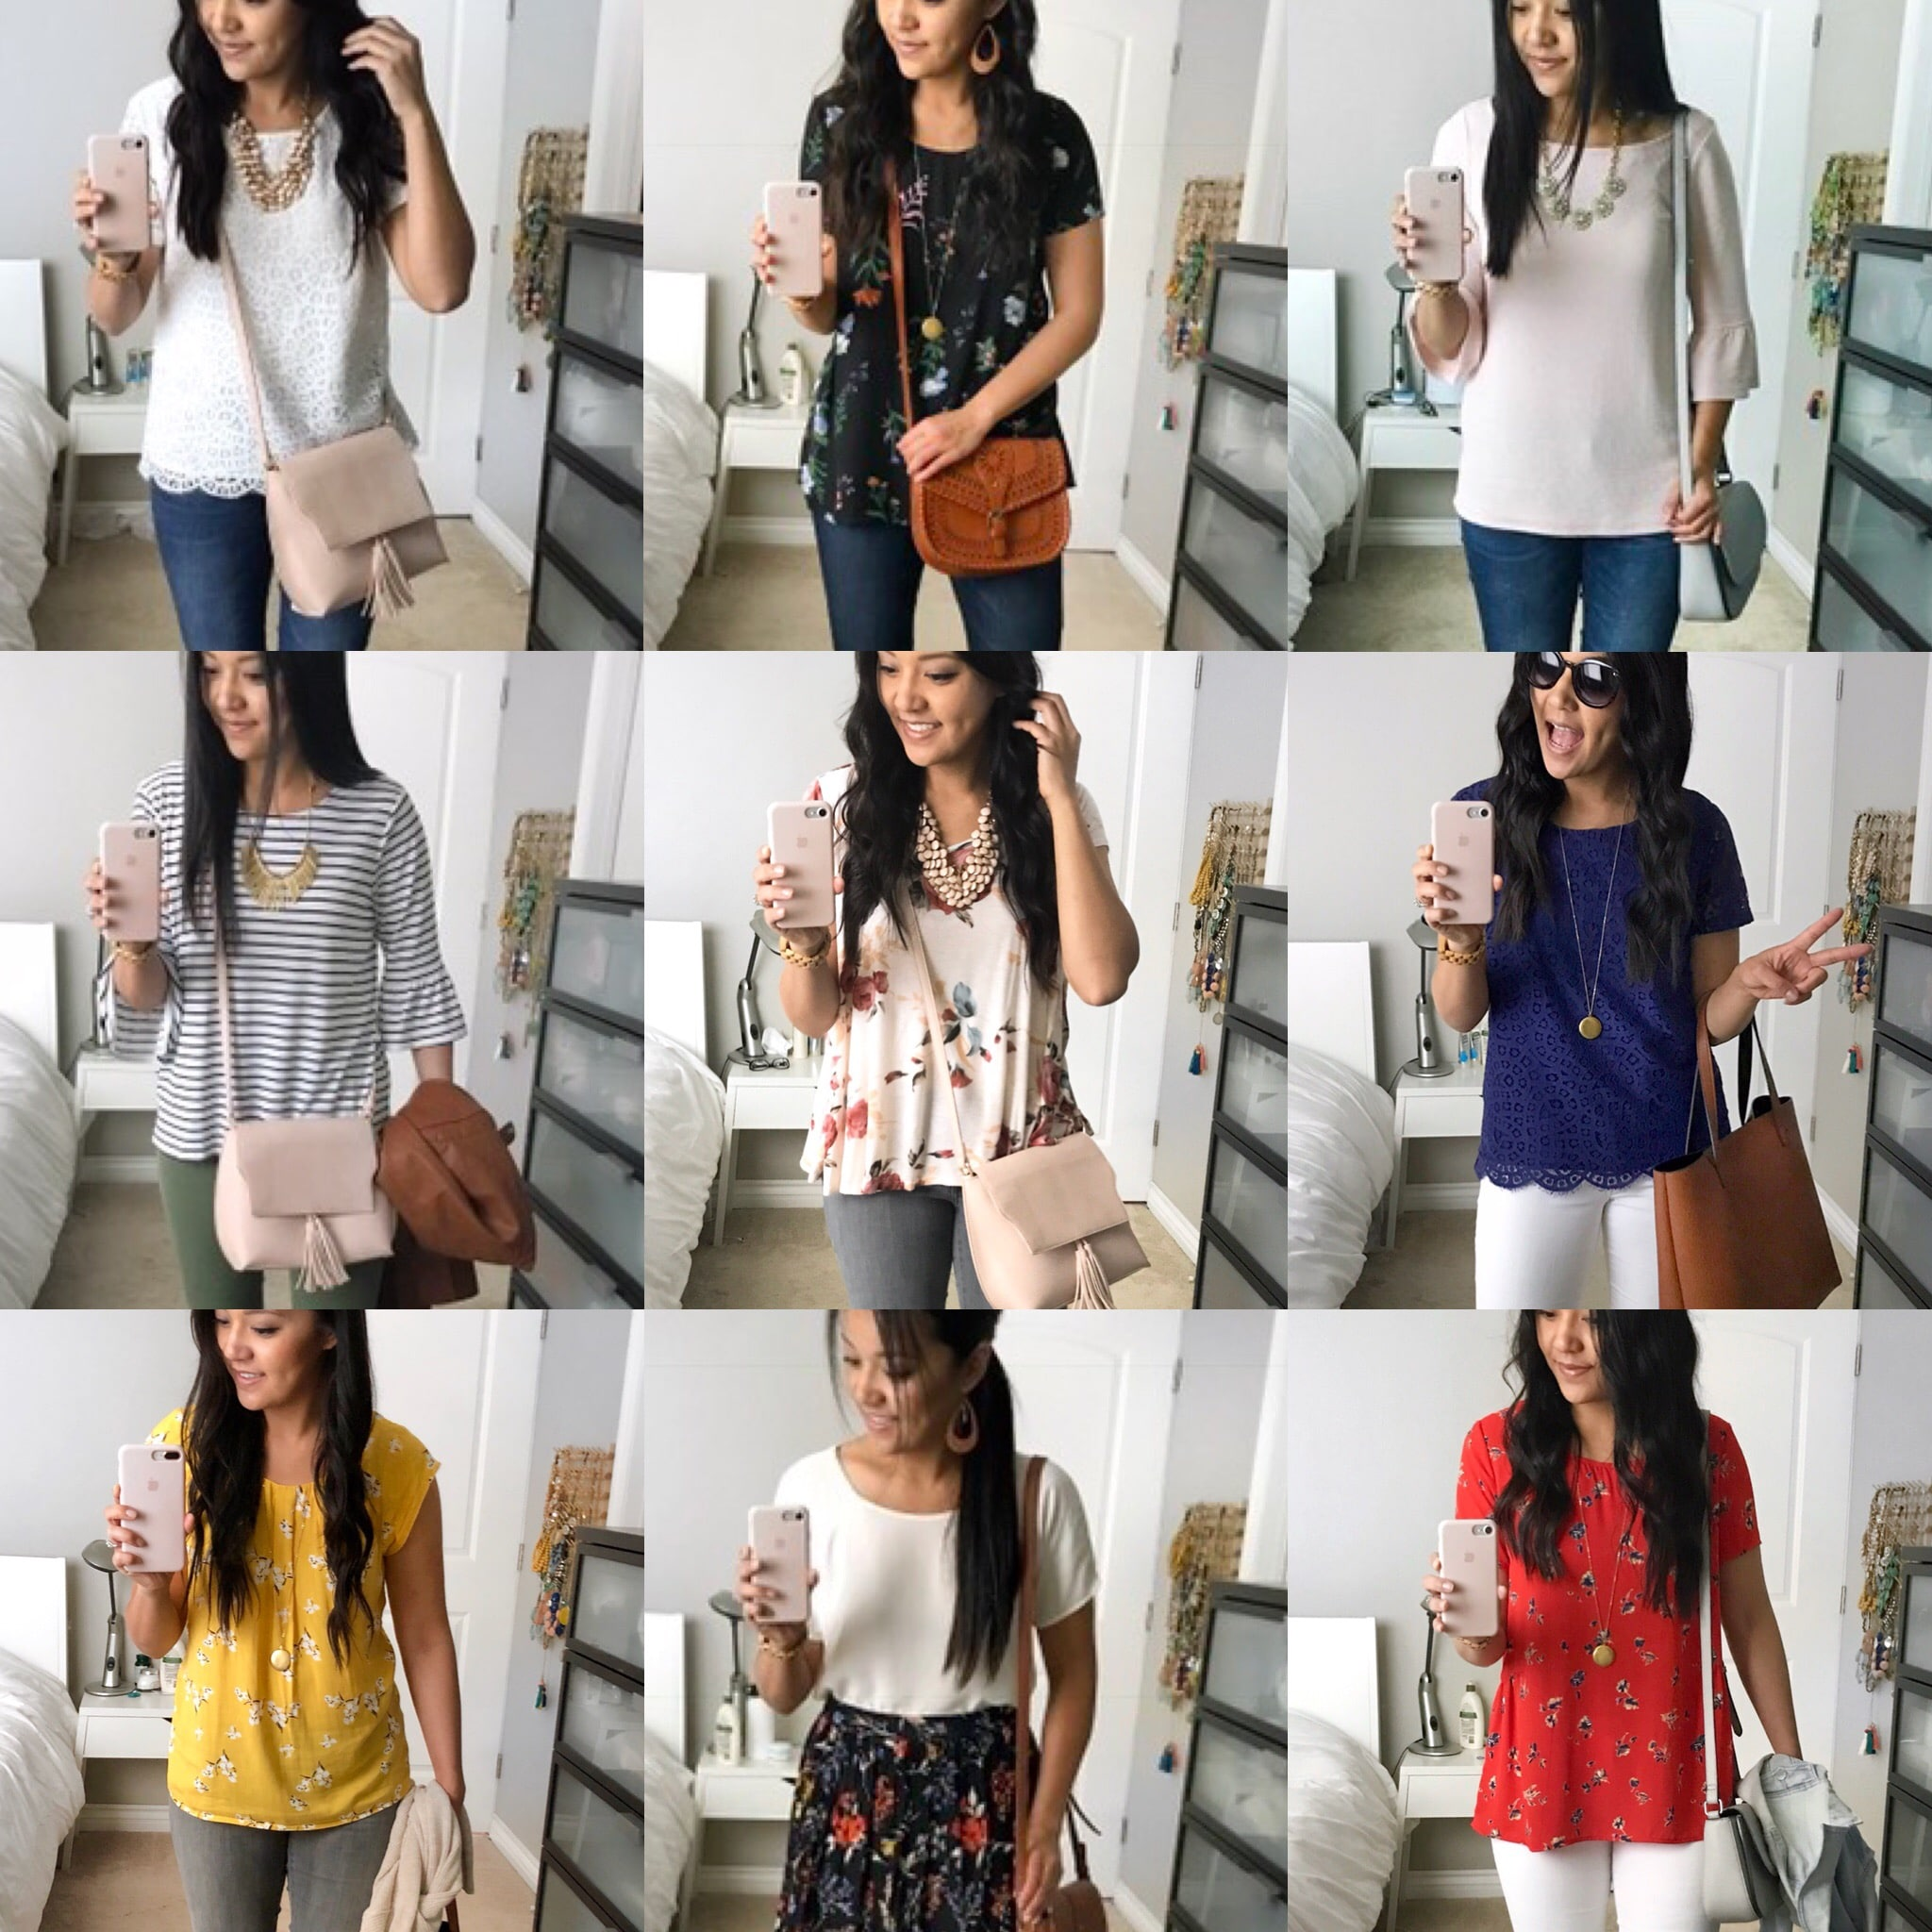 Spring Building Blocks for Dressy Casual Outfits: Tops